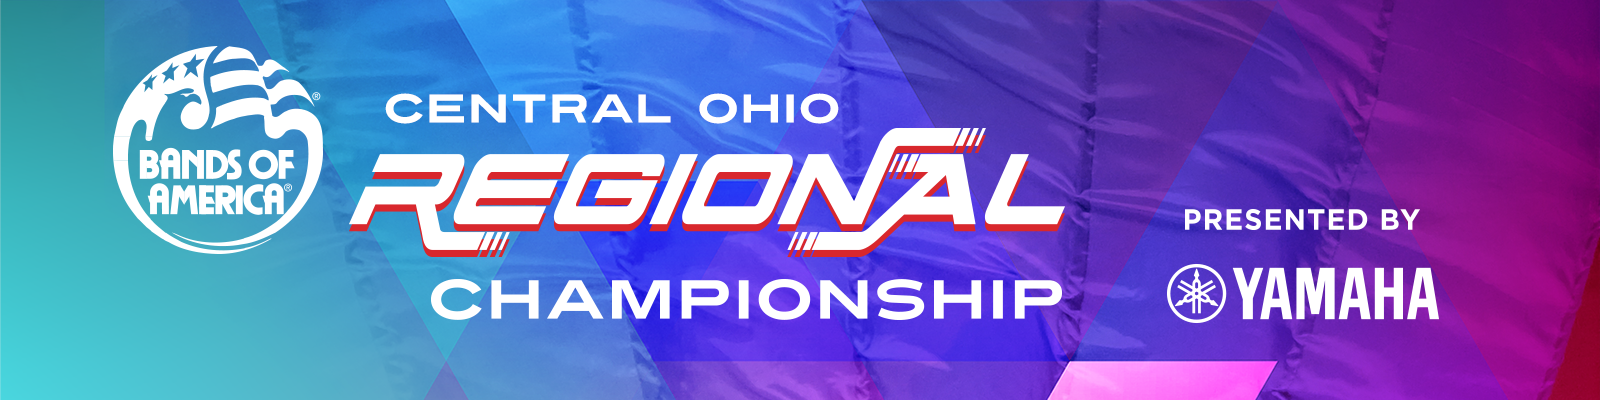 Bands of America Central Ohio Regional Championship Presented by Yamaha